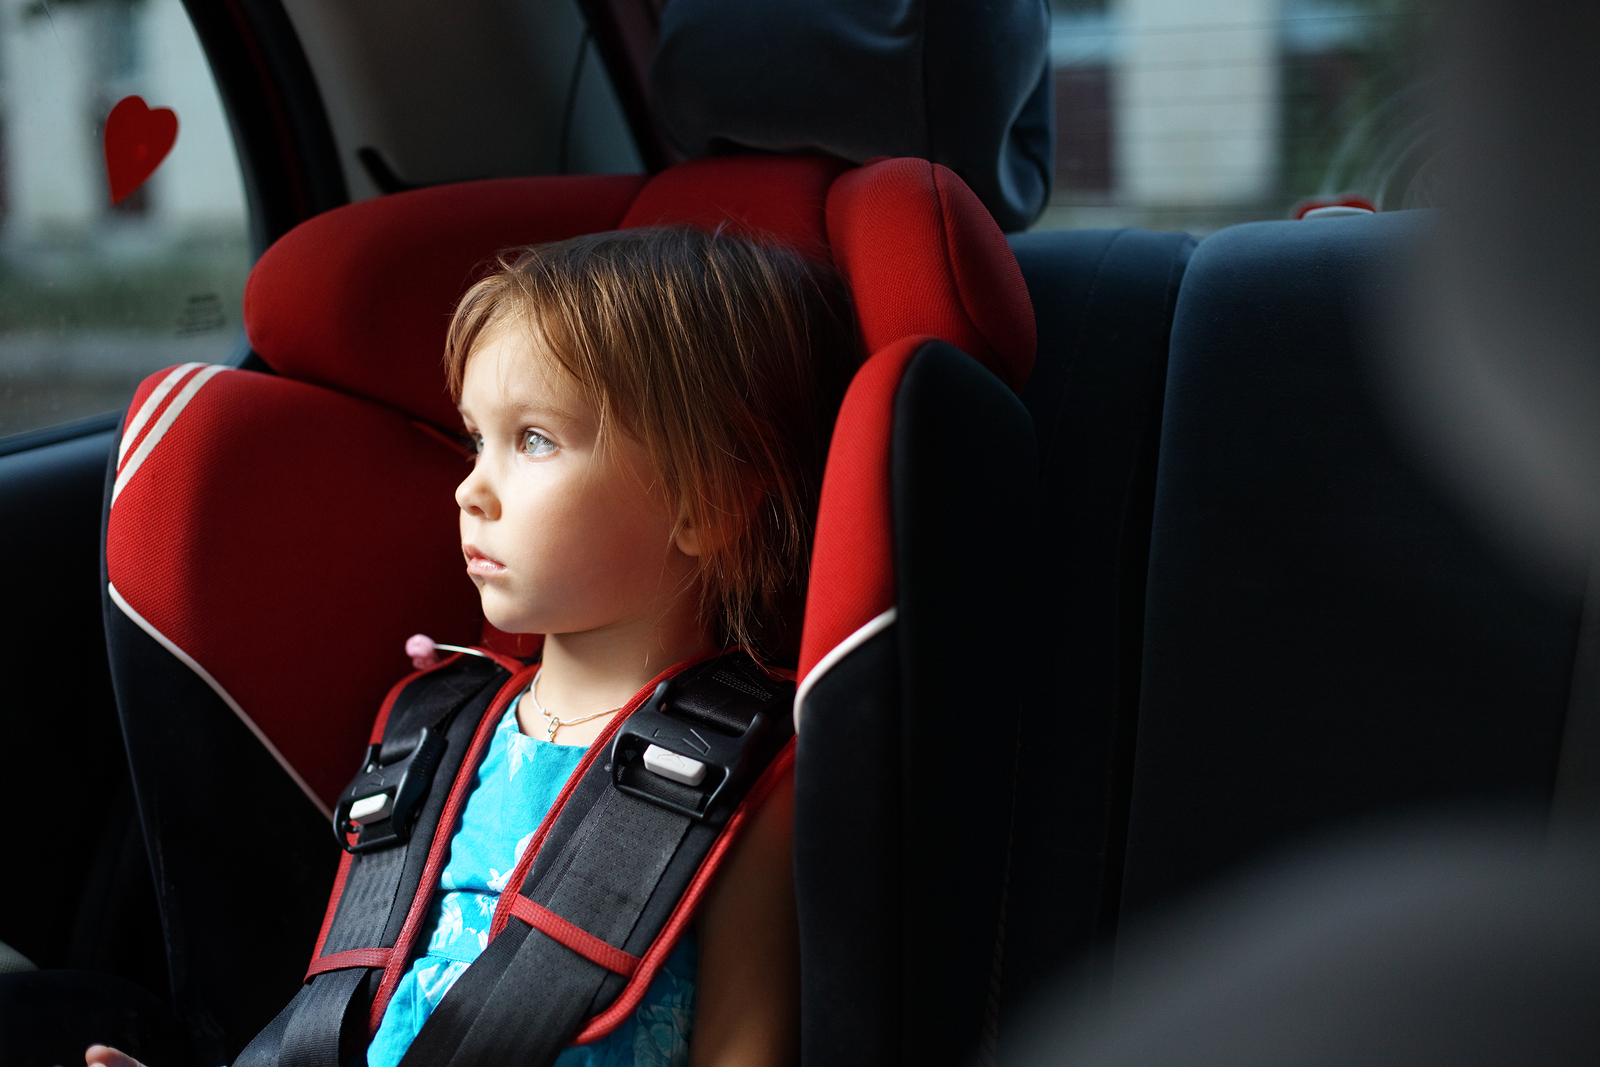 Mobile Mom Launches Changeorg Petition To Change Alabama Car Seat Laws